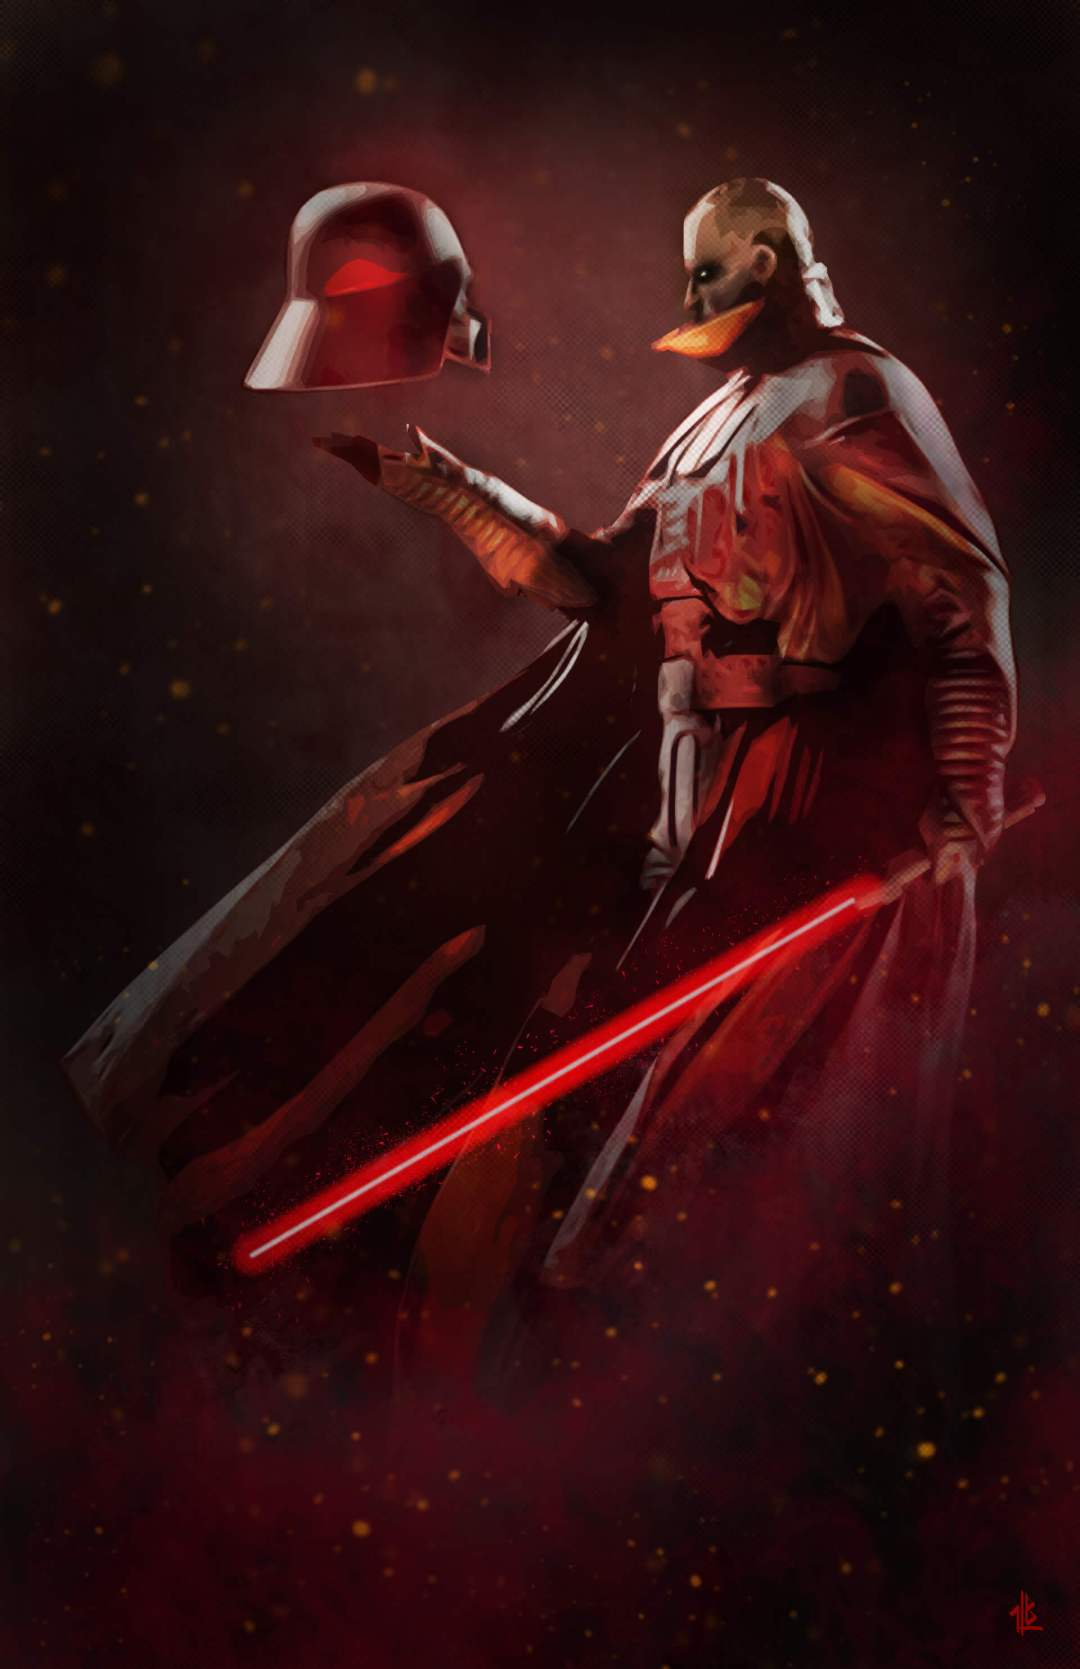 Lord Of The Sith by Ben Laverock